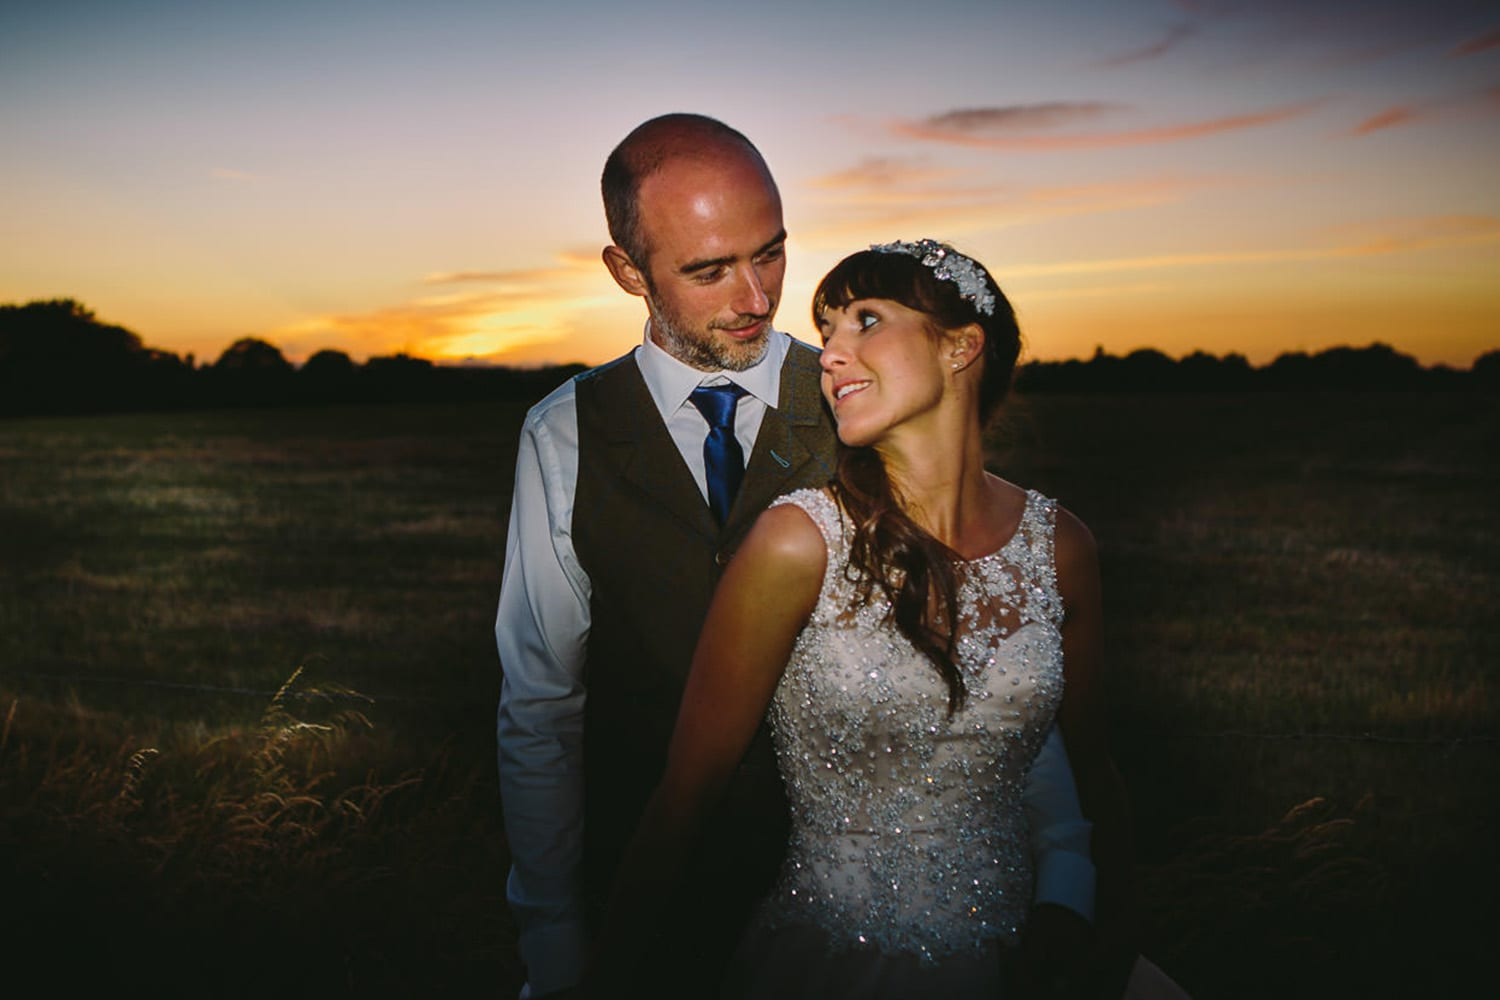 A portrait of the bride and groom at sunset